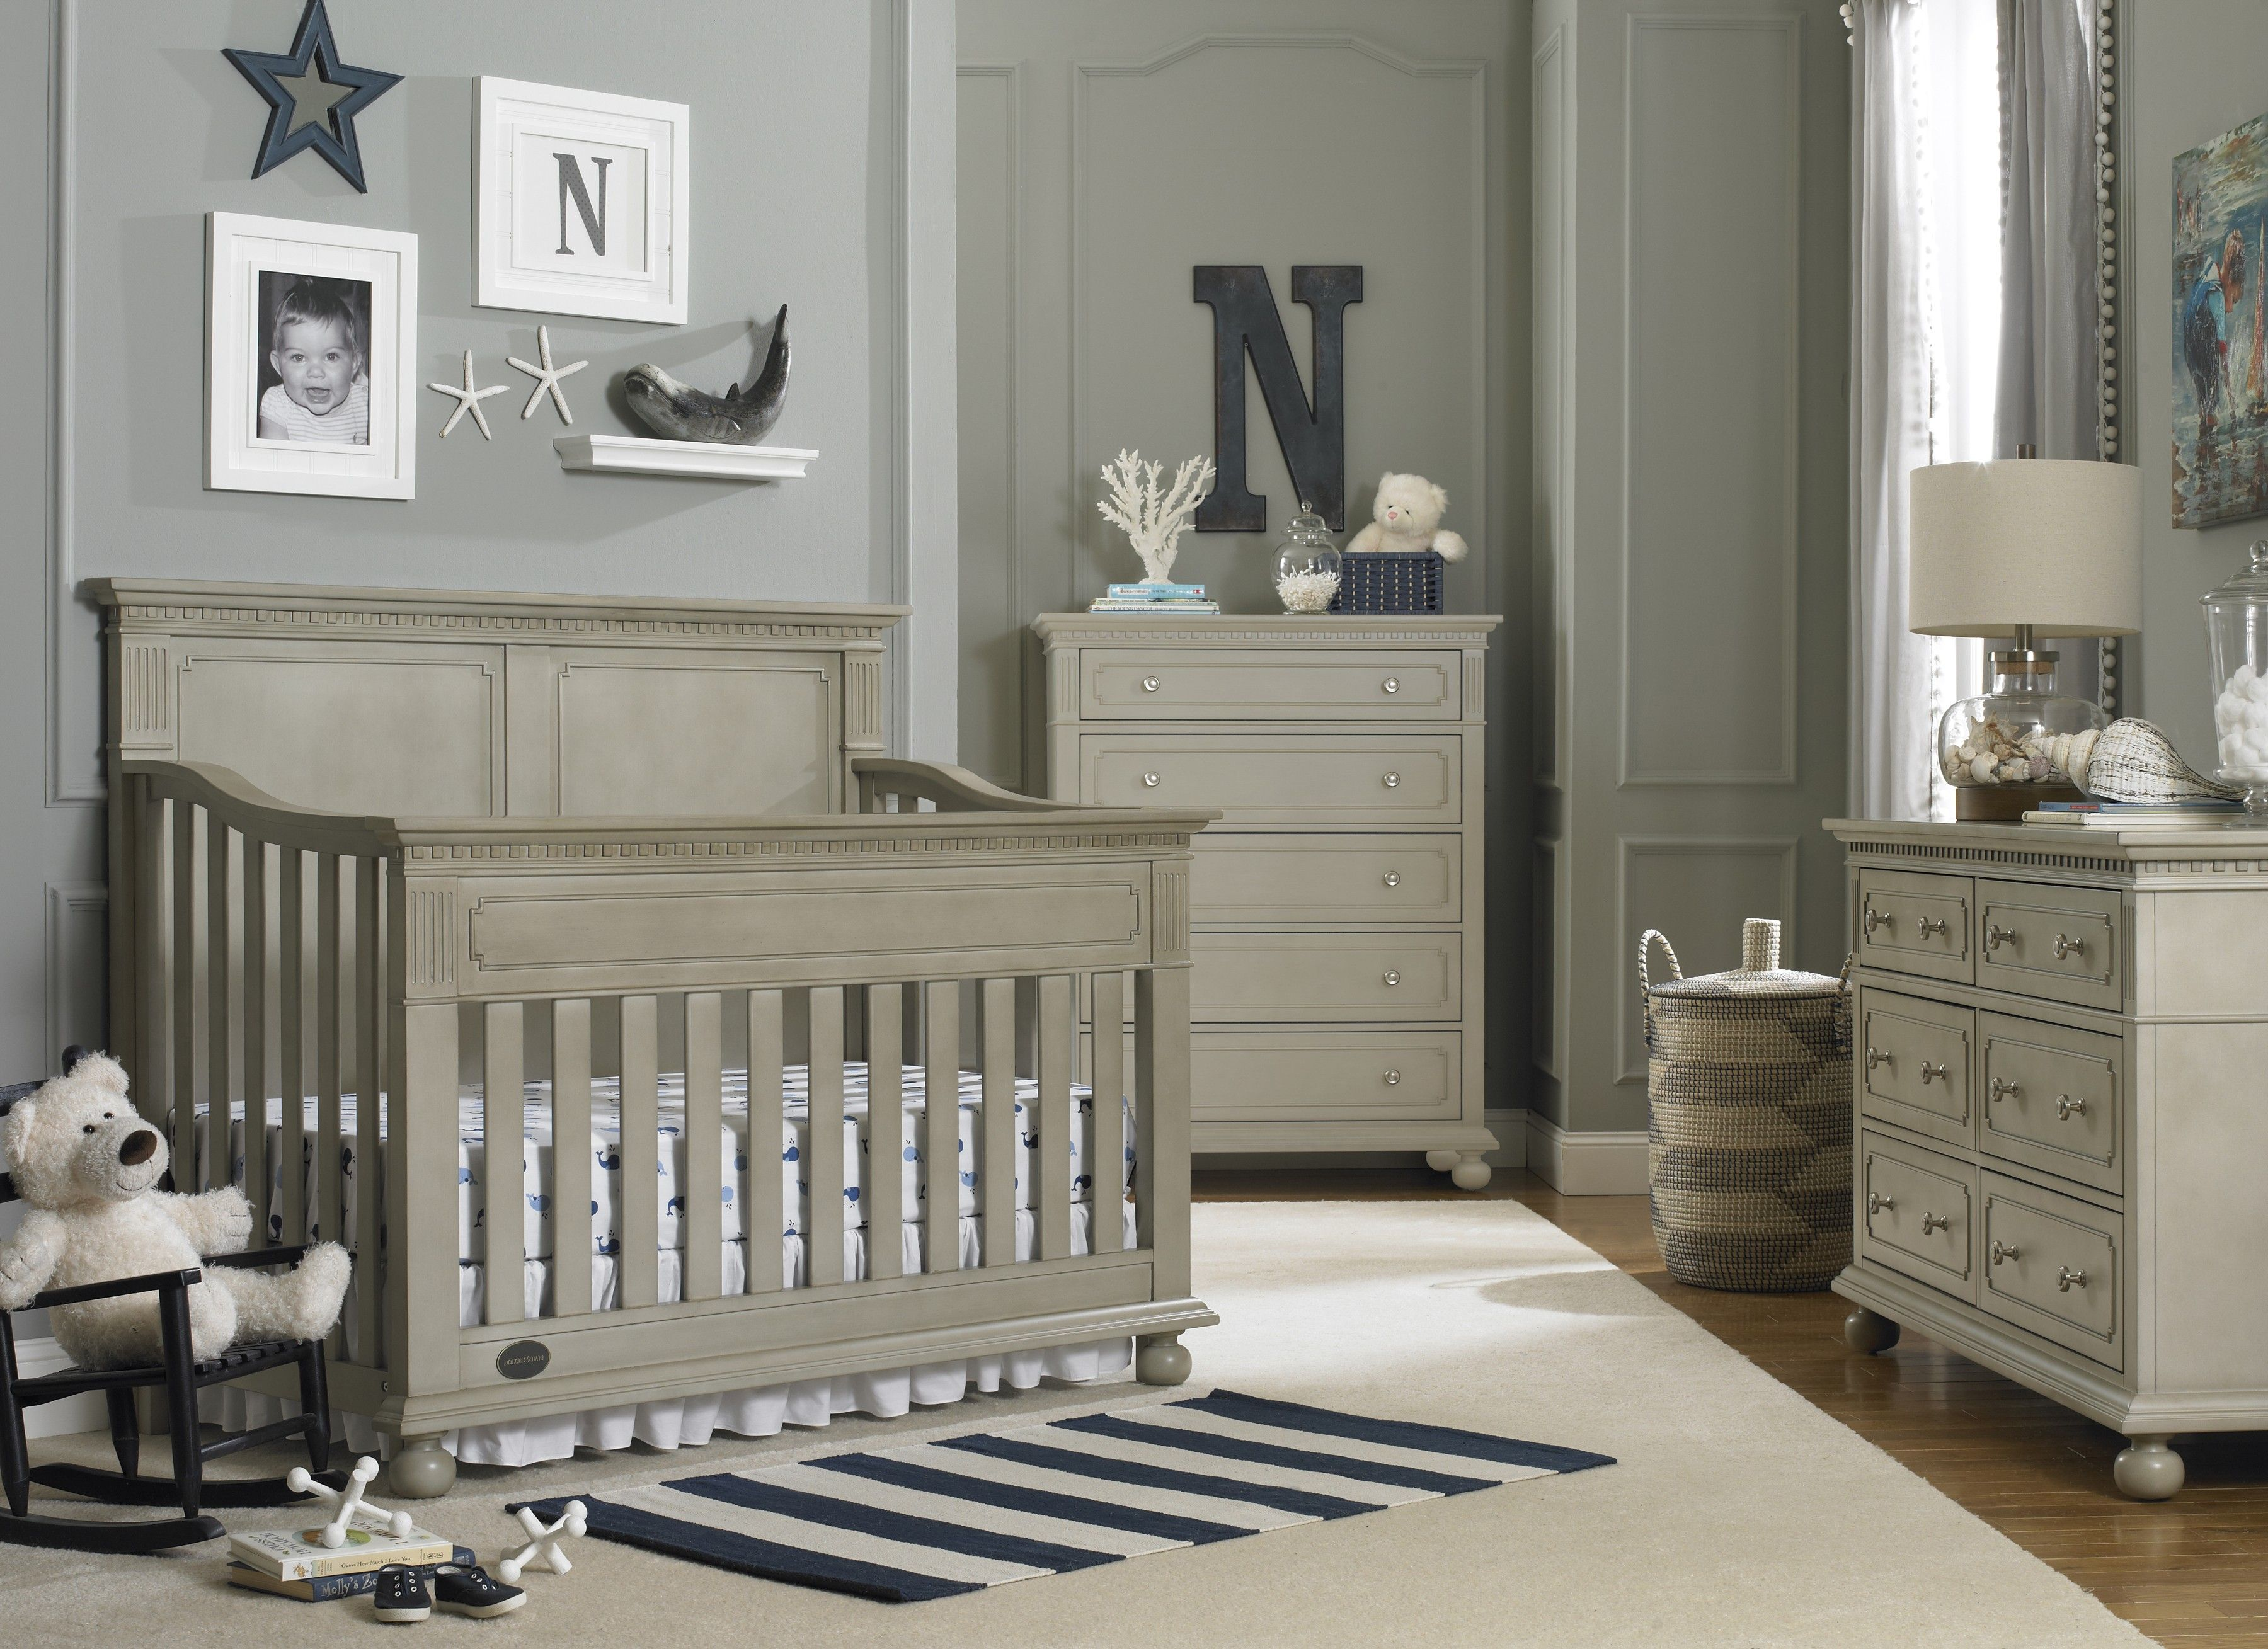 Amazing Vintage Baby Boy Nursery Ideas And Remodelling Gallery Design